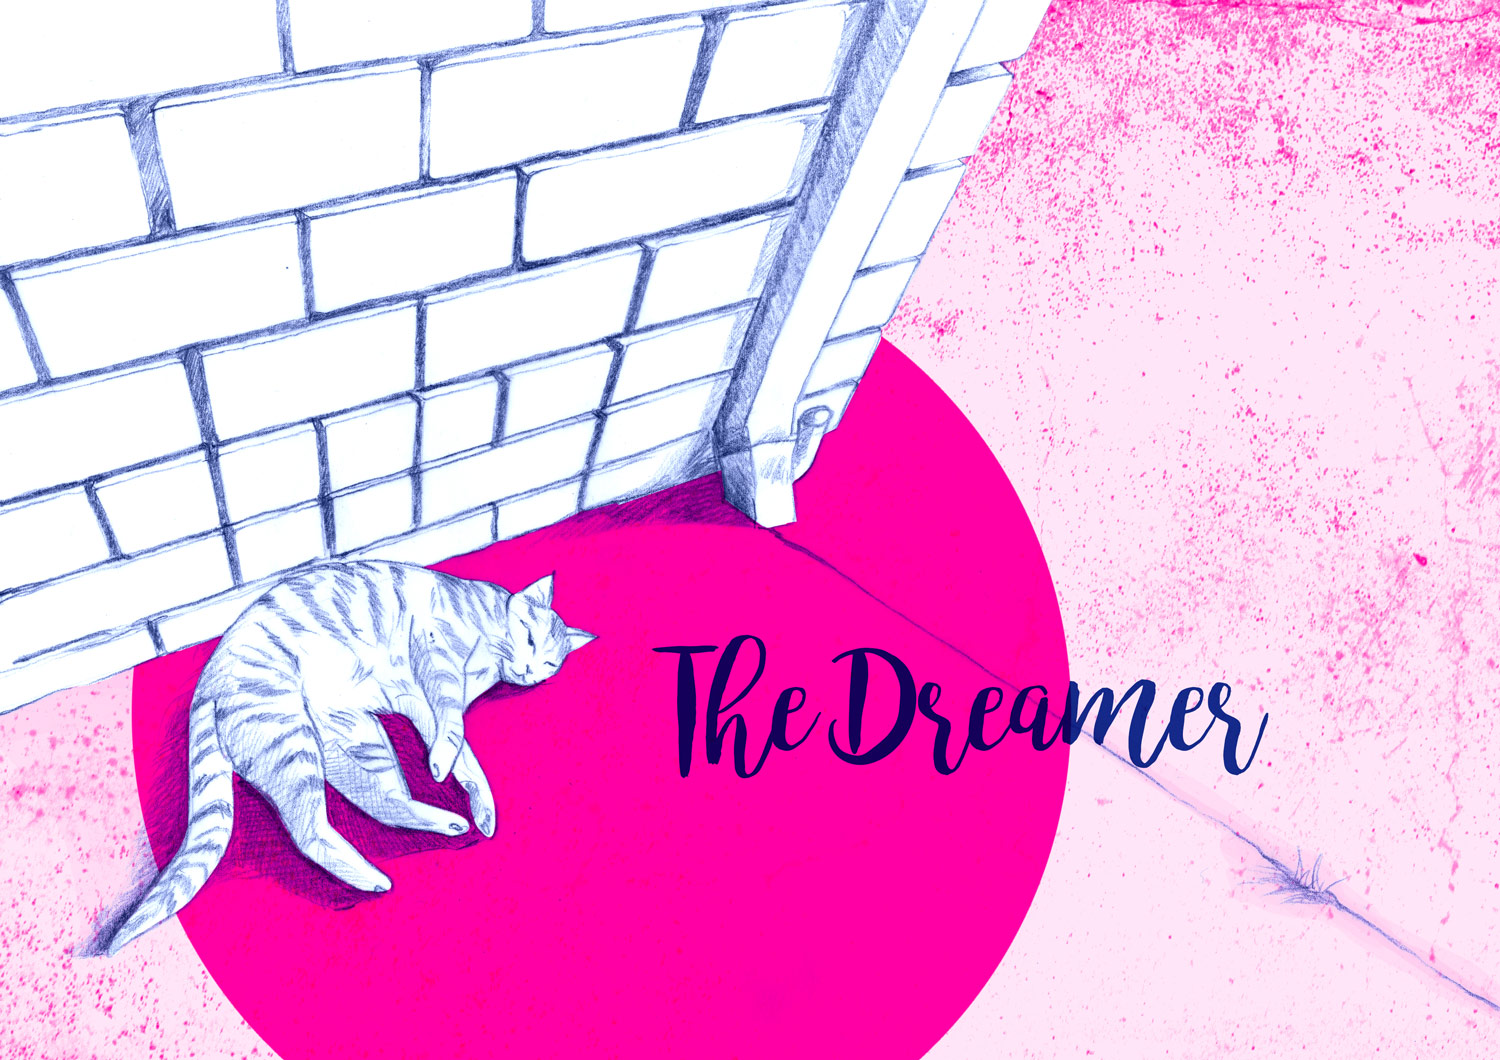 The dreamer illustration